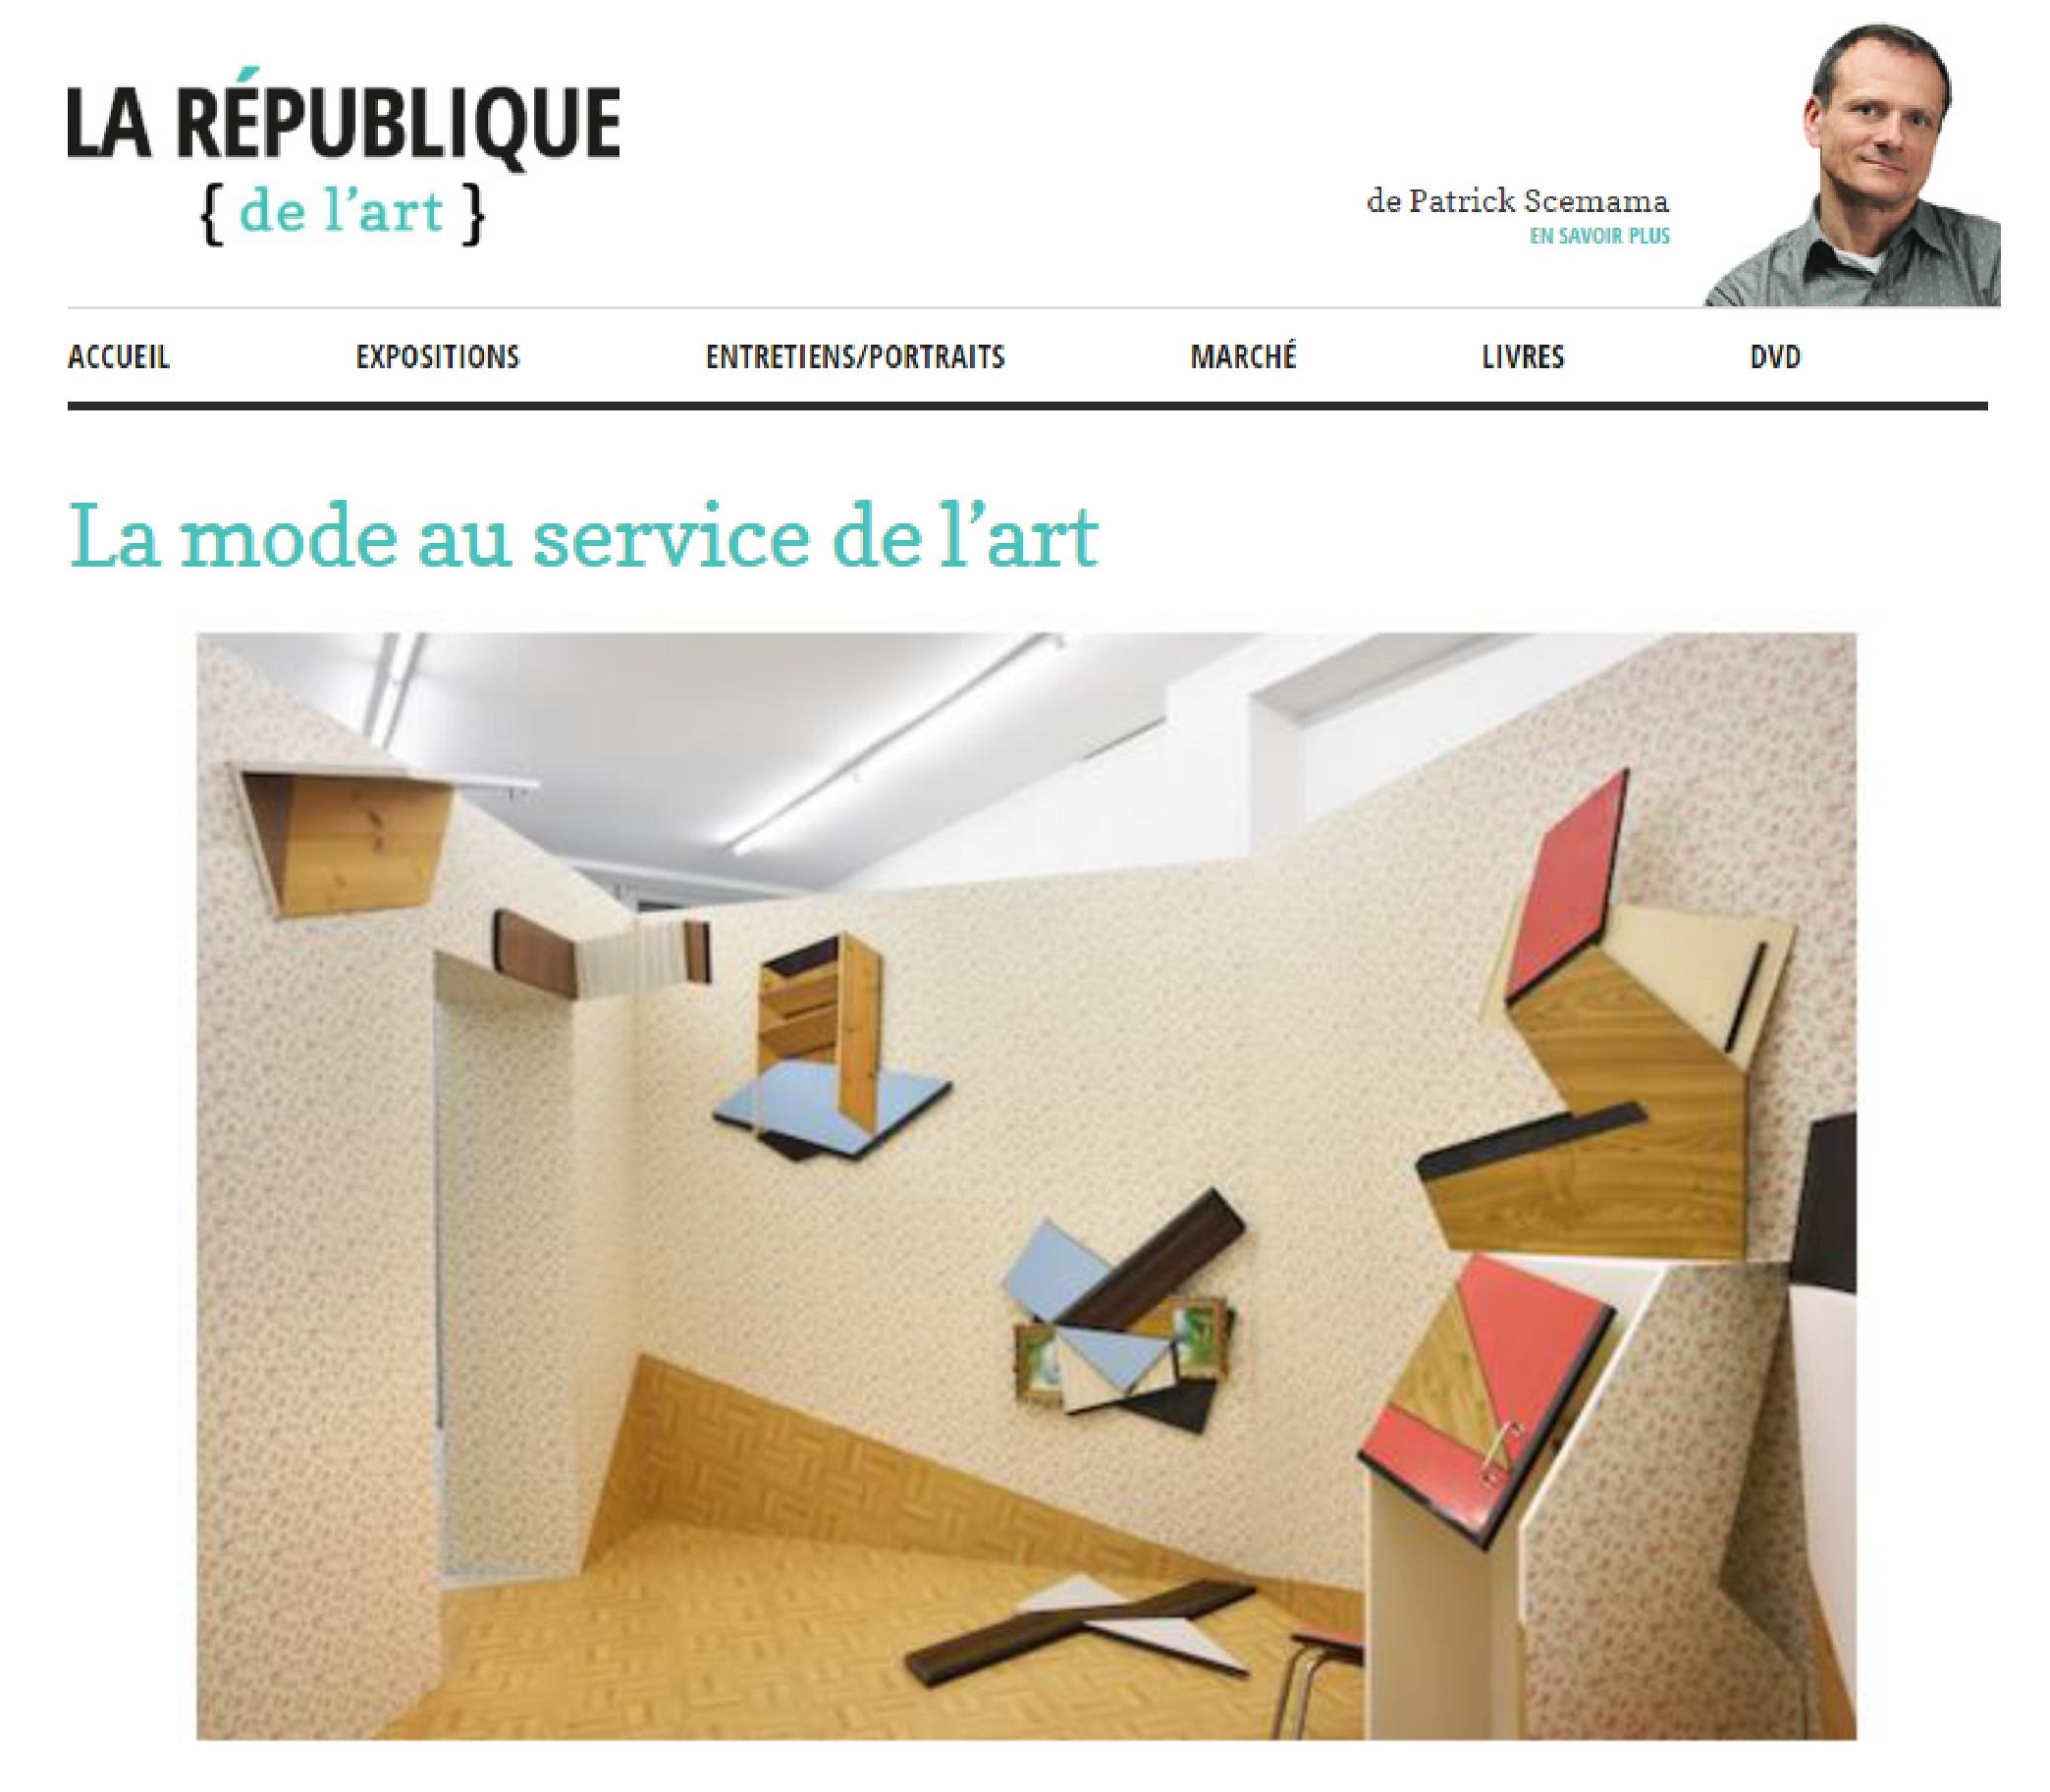 LA REPUBLIQUE DE L'ART